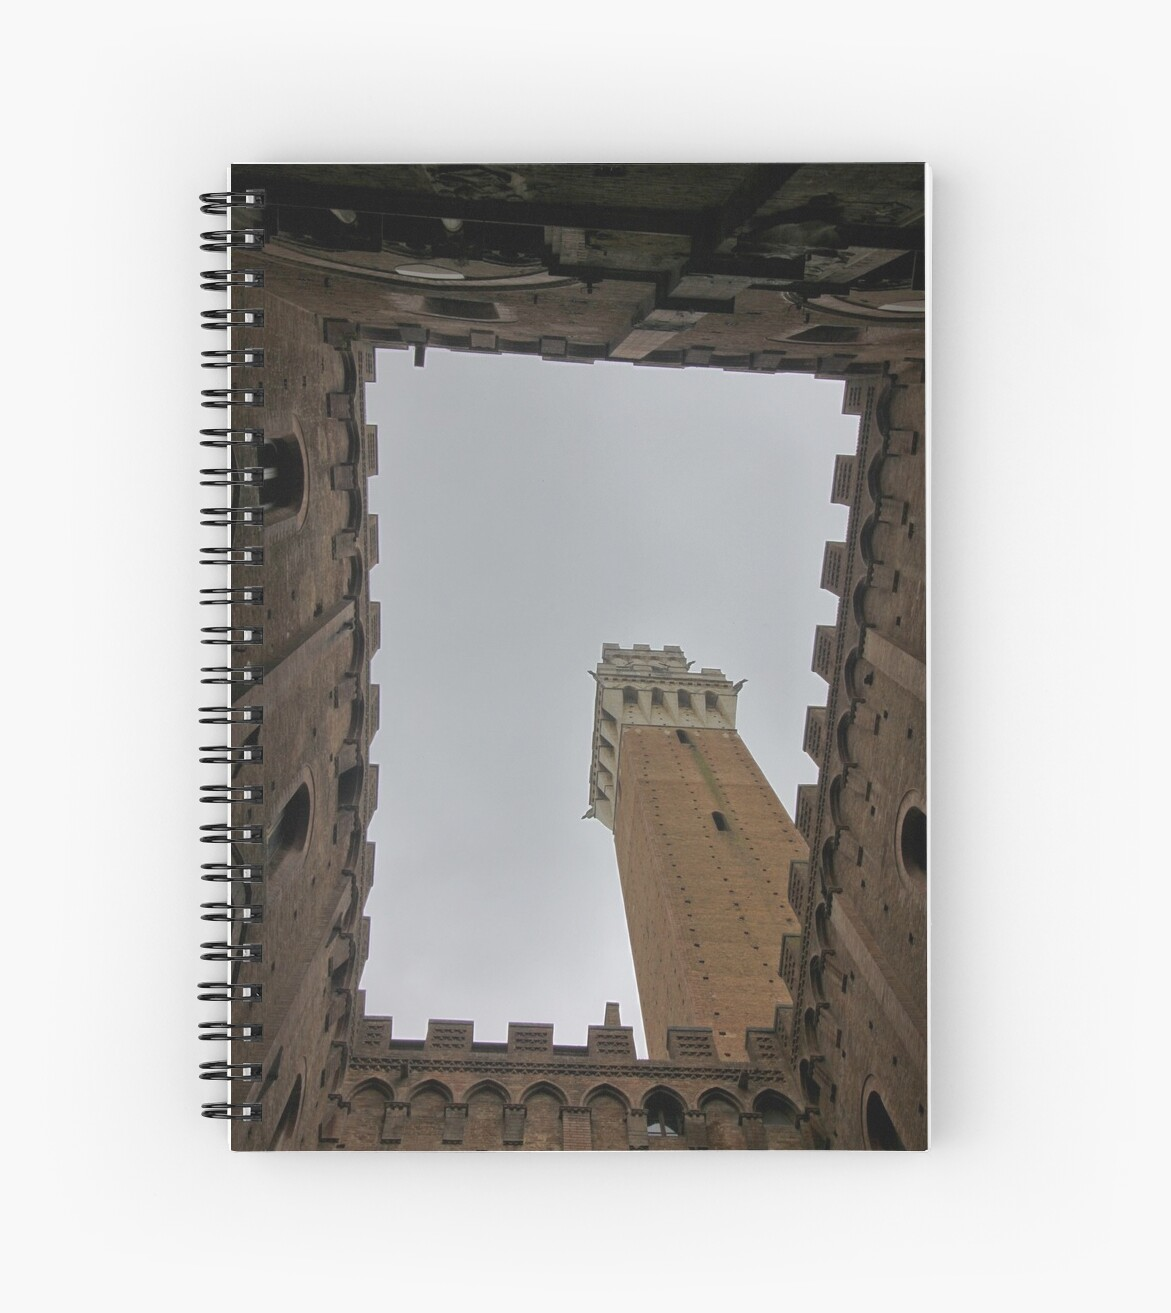 Courtyard below tower in Siena, Italy by renprovo